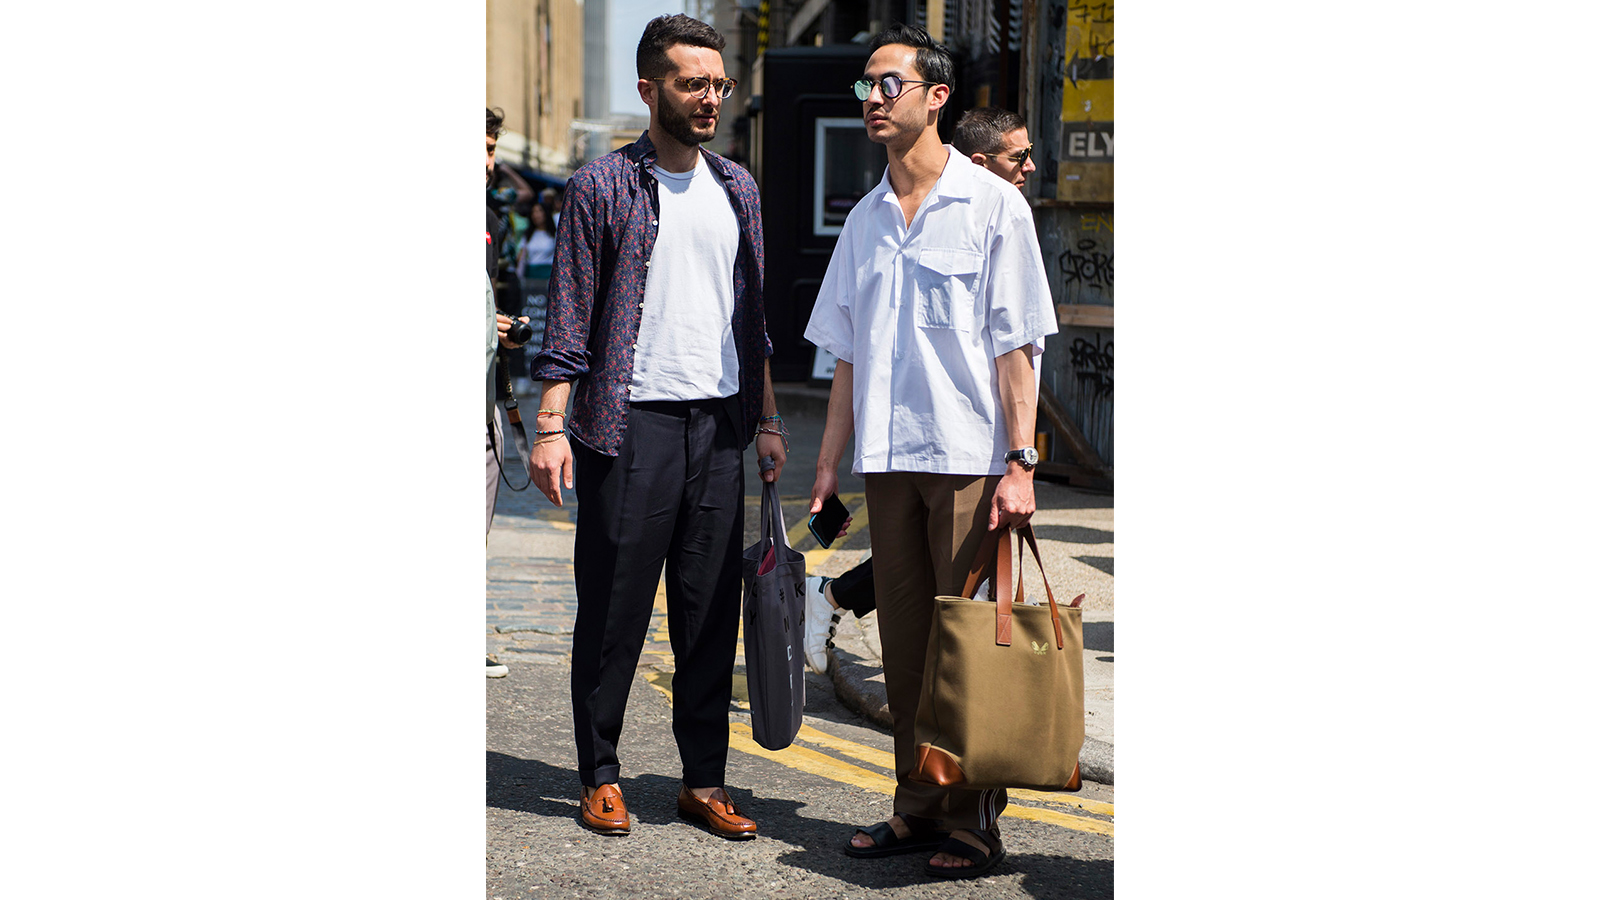 7 style tips for tall men - approach patterns with caution